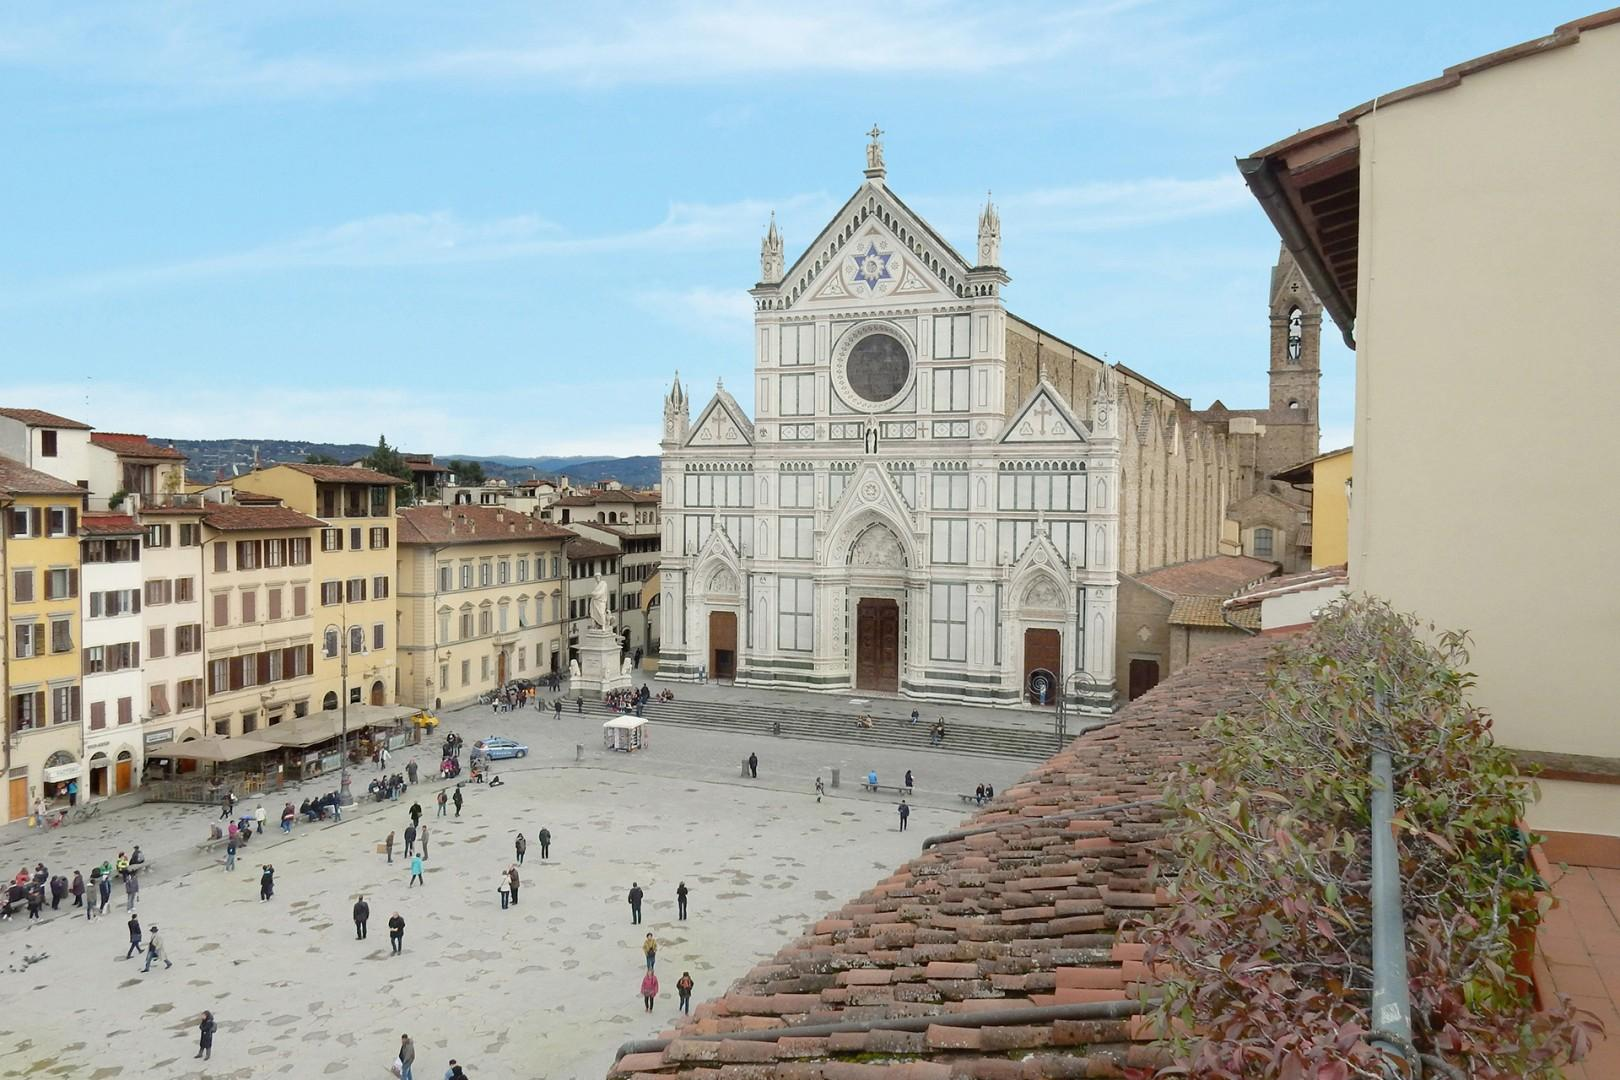 Several apartments in this palazzo have a splendid view of the piazza and basilica.